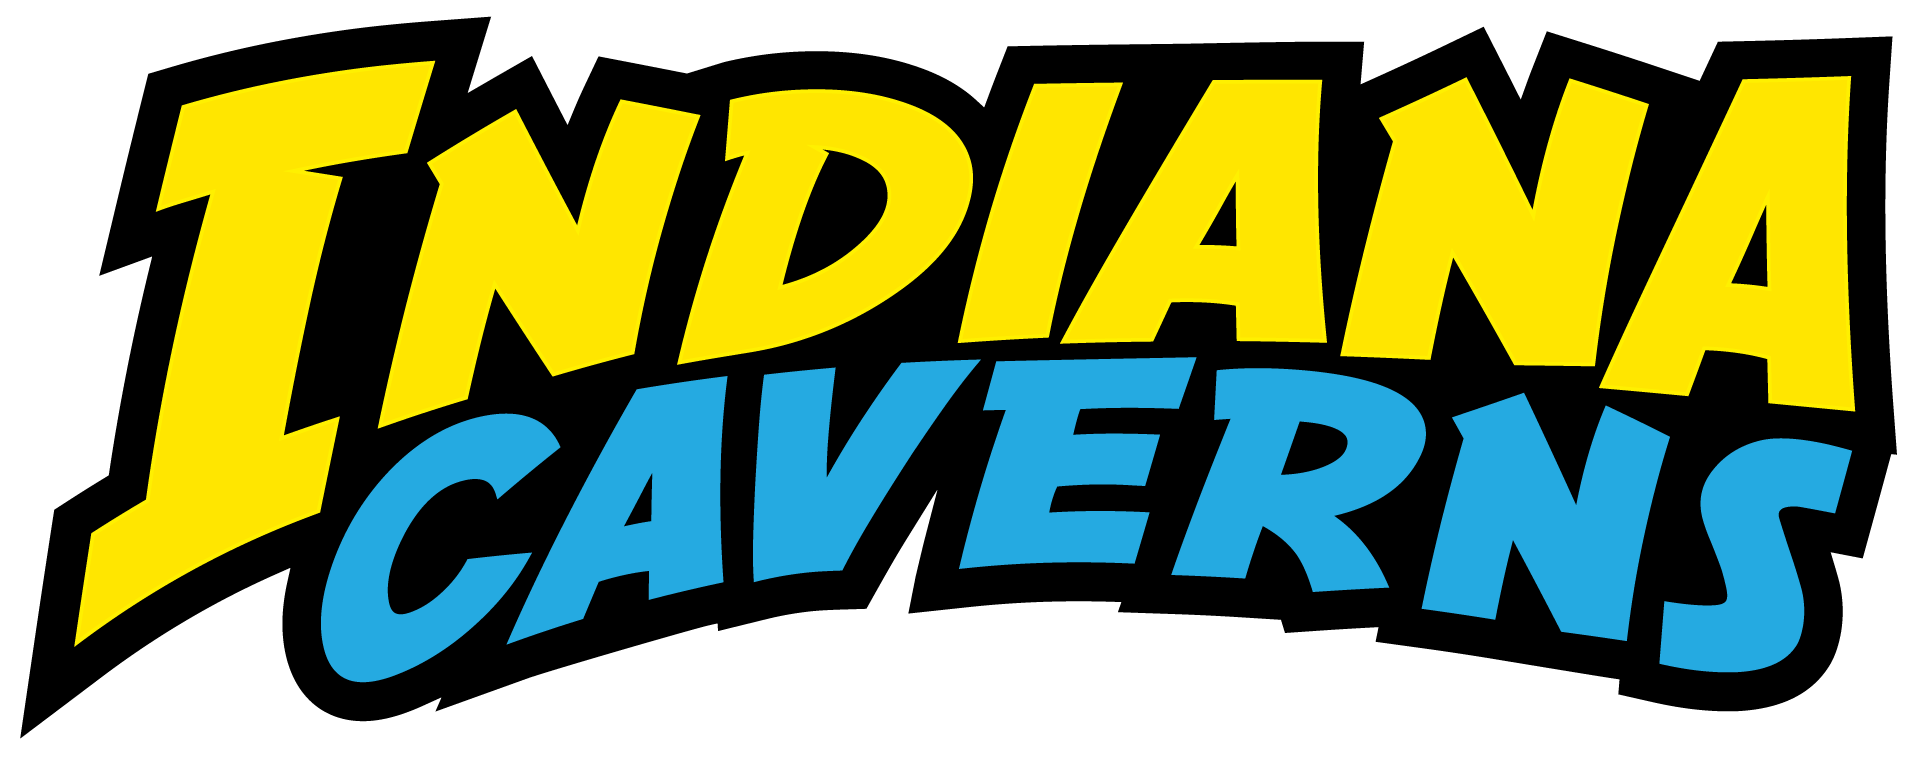 Cave clipart cavern. Indiana caverns s longest